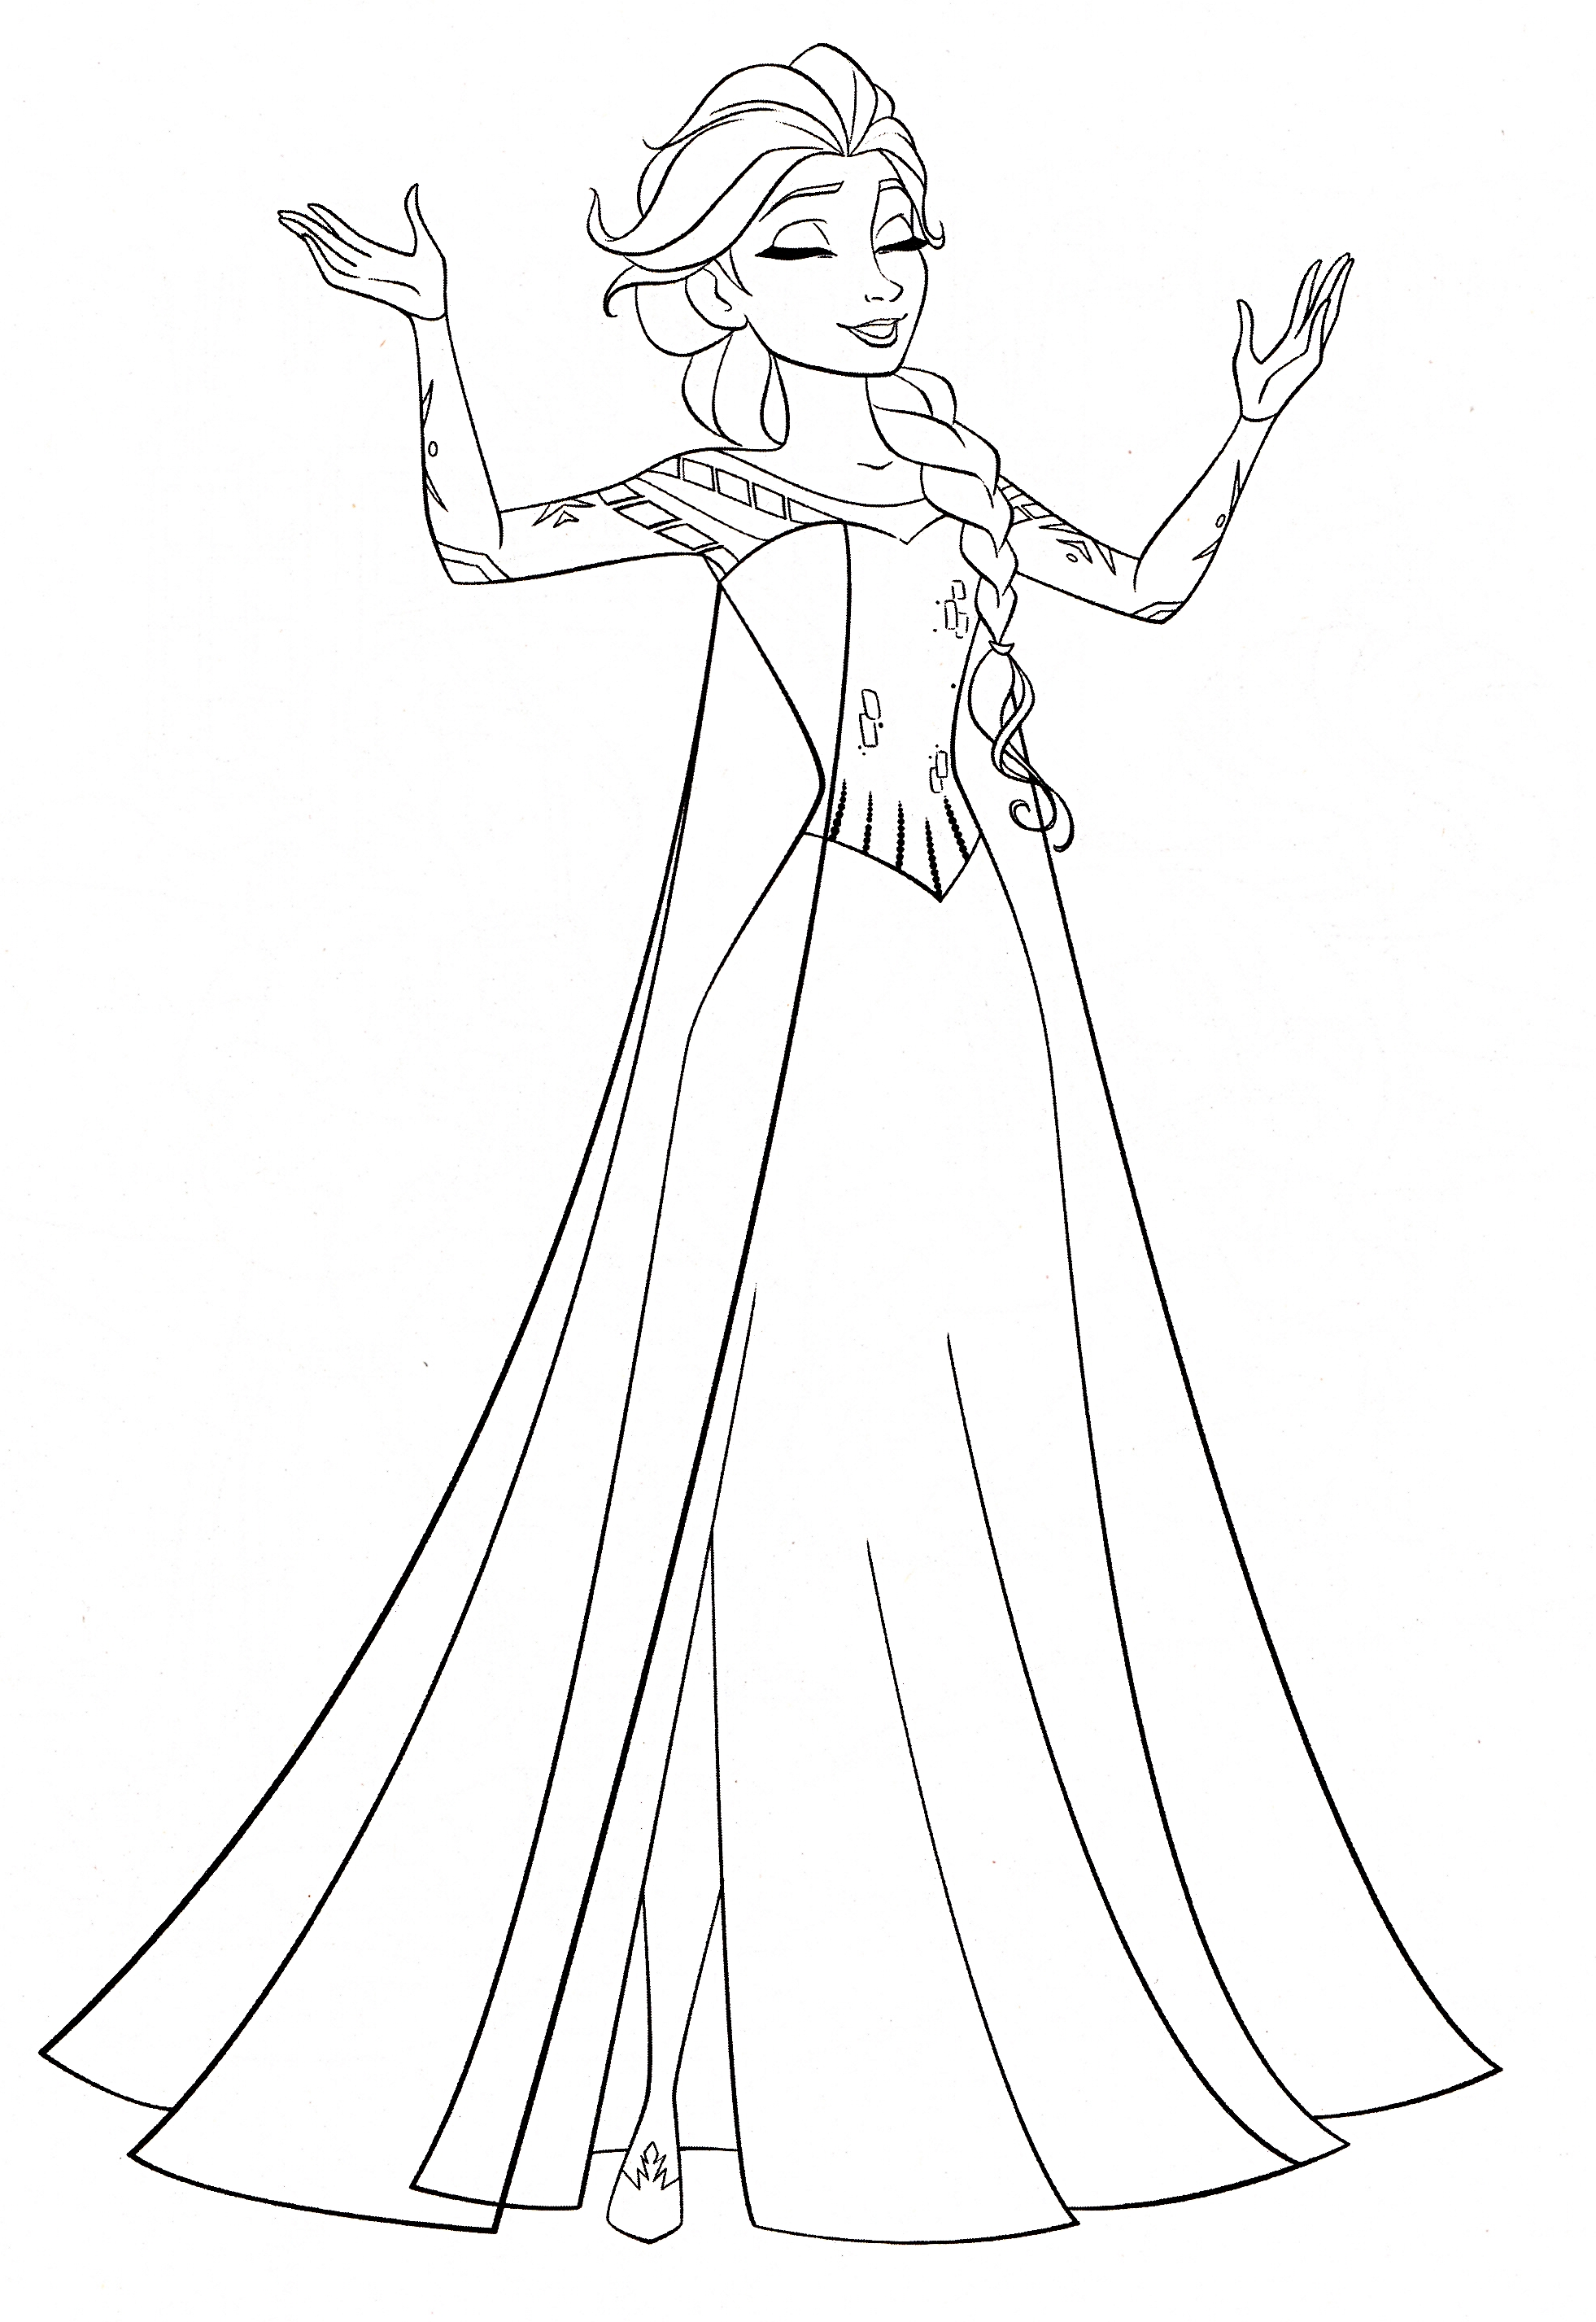 Elsa printable coloring page